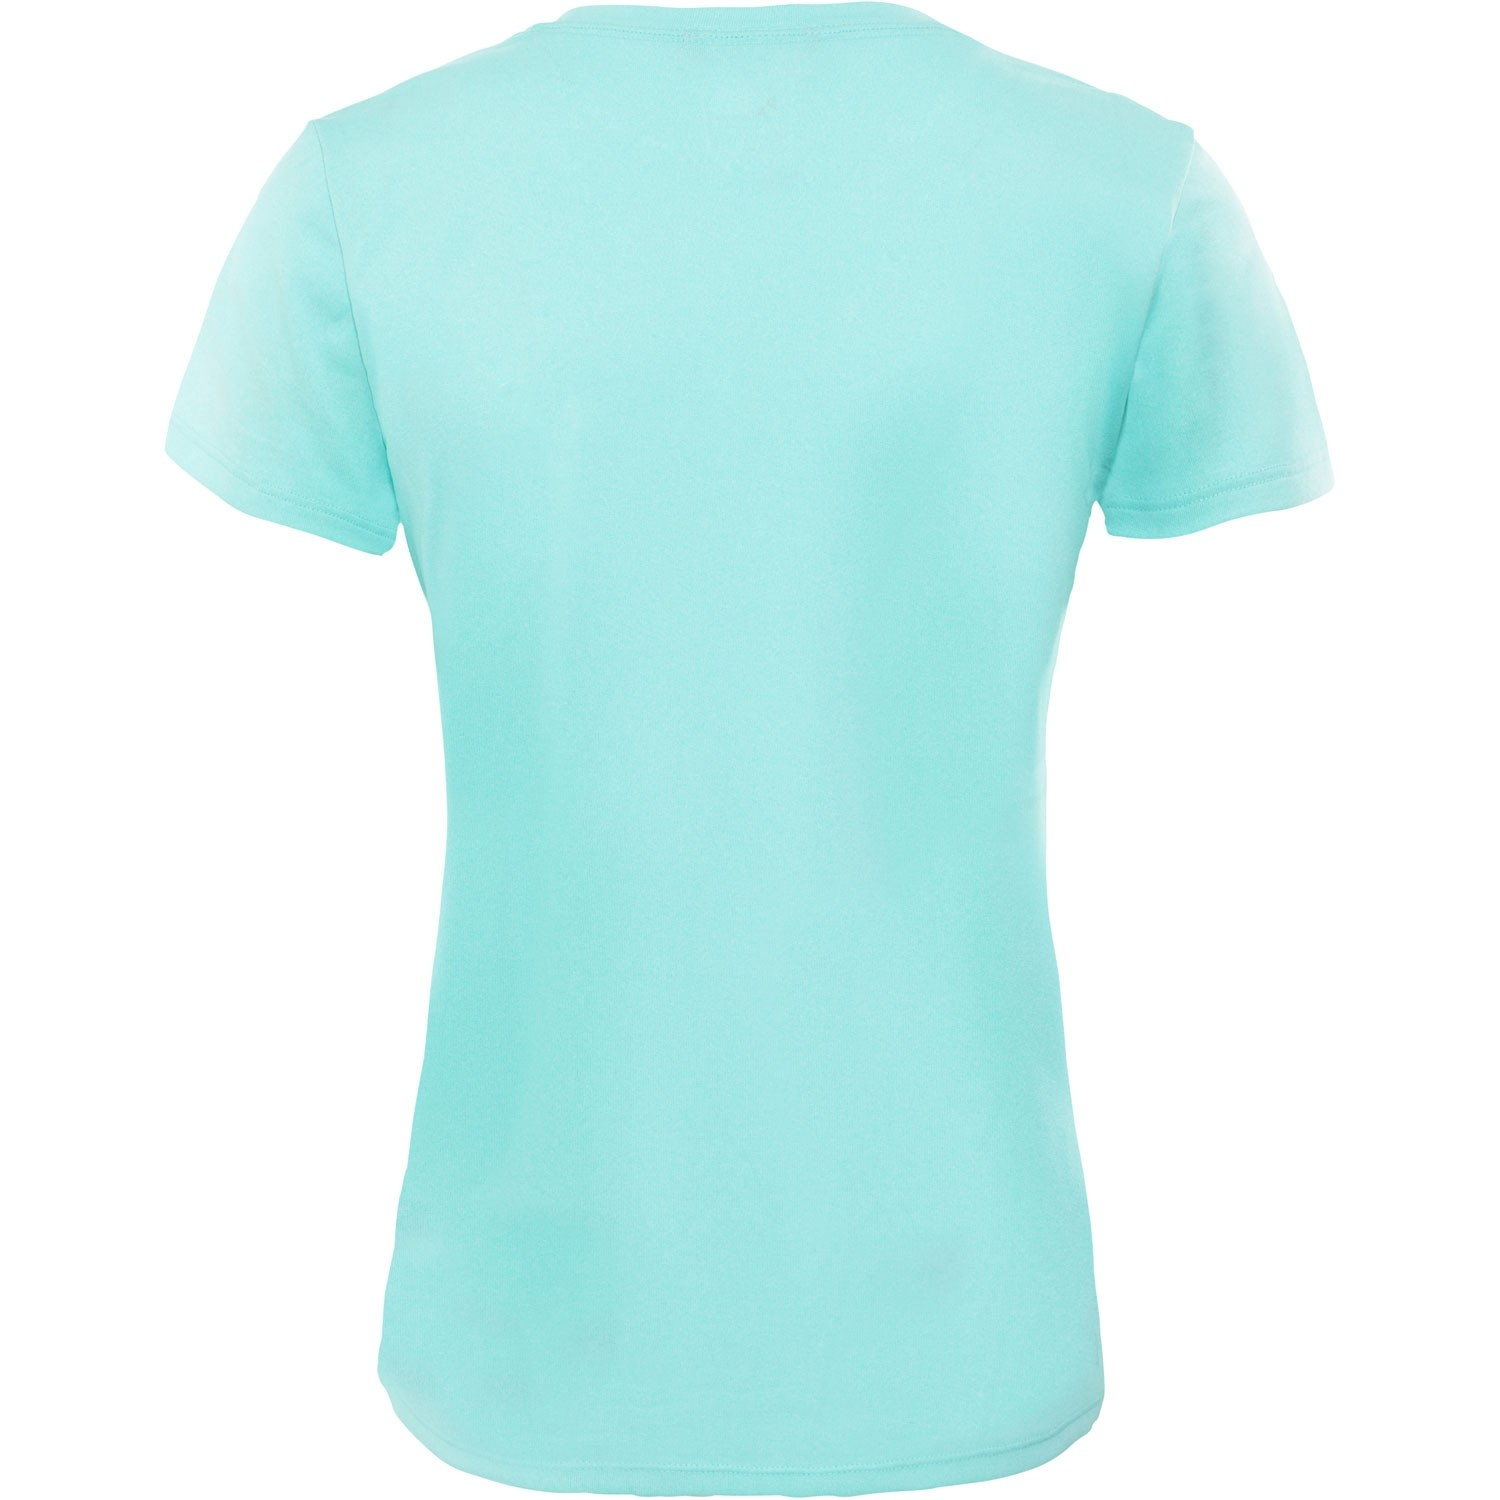 The North Face Reaxion Amp Crew Women's T-Shirt - Mint Blue Heather